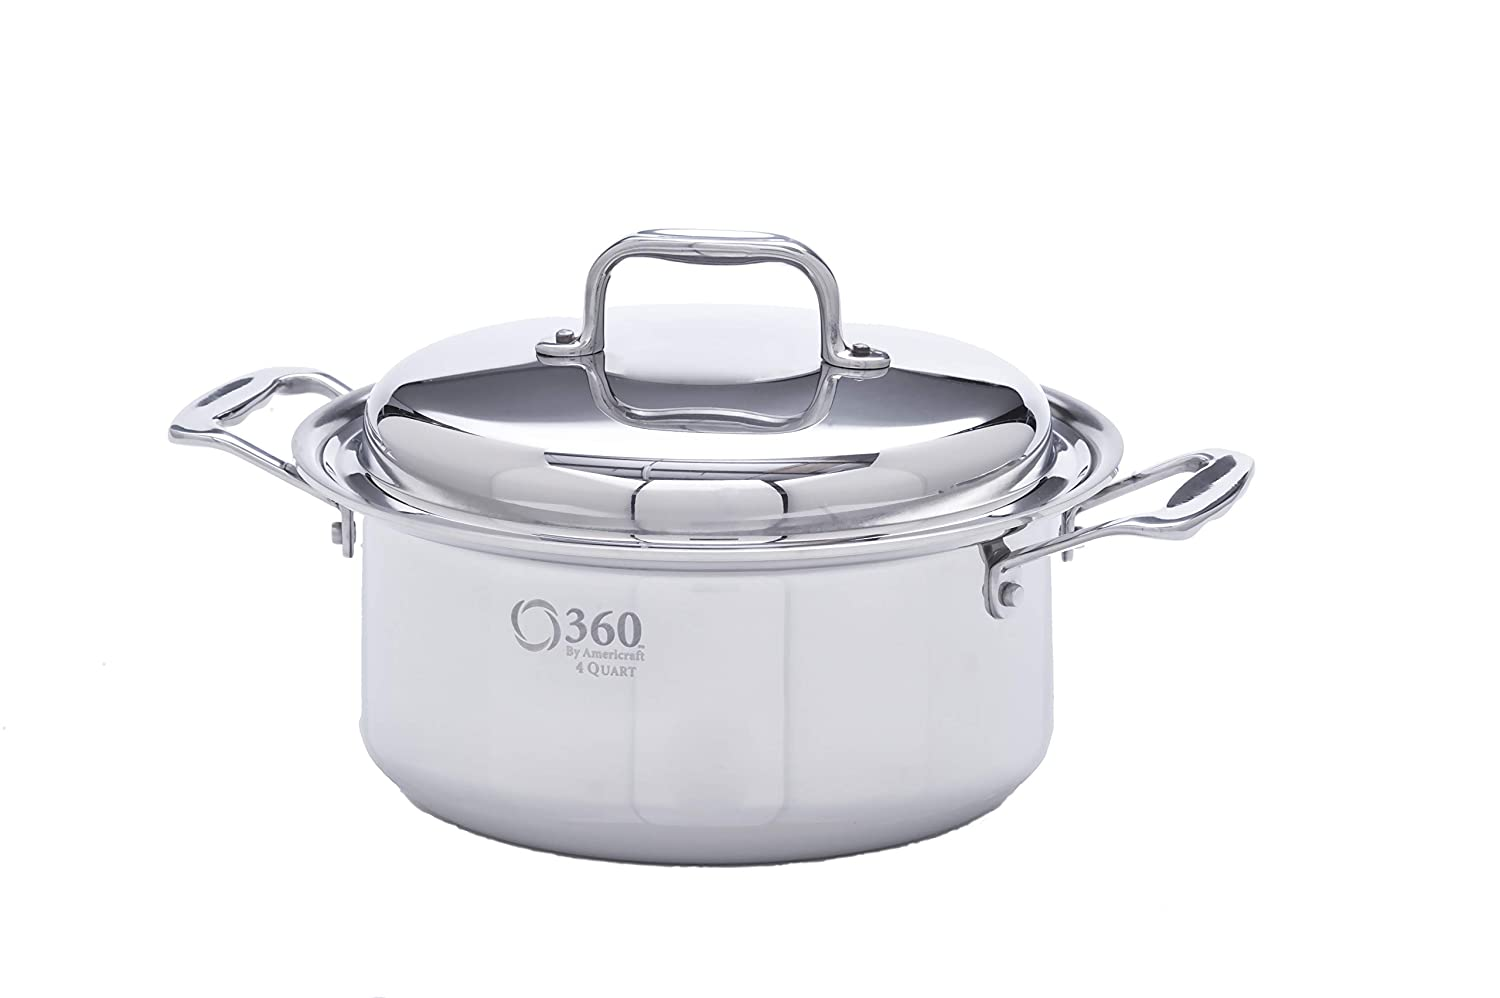 360 Stainless Steel Cookware 4 Quart Saucepan with Lid. American Made, Induction Cookware, Waterless Cookware, Dishwasher Safe, Oven Safe, Professional Grade